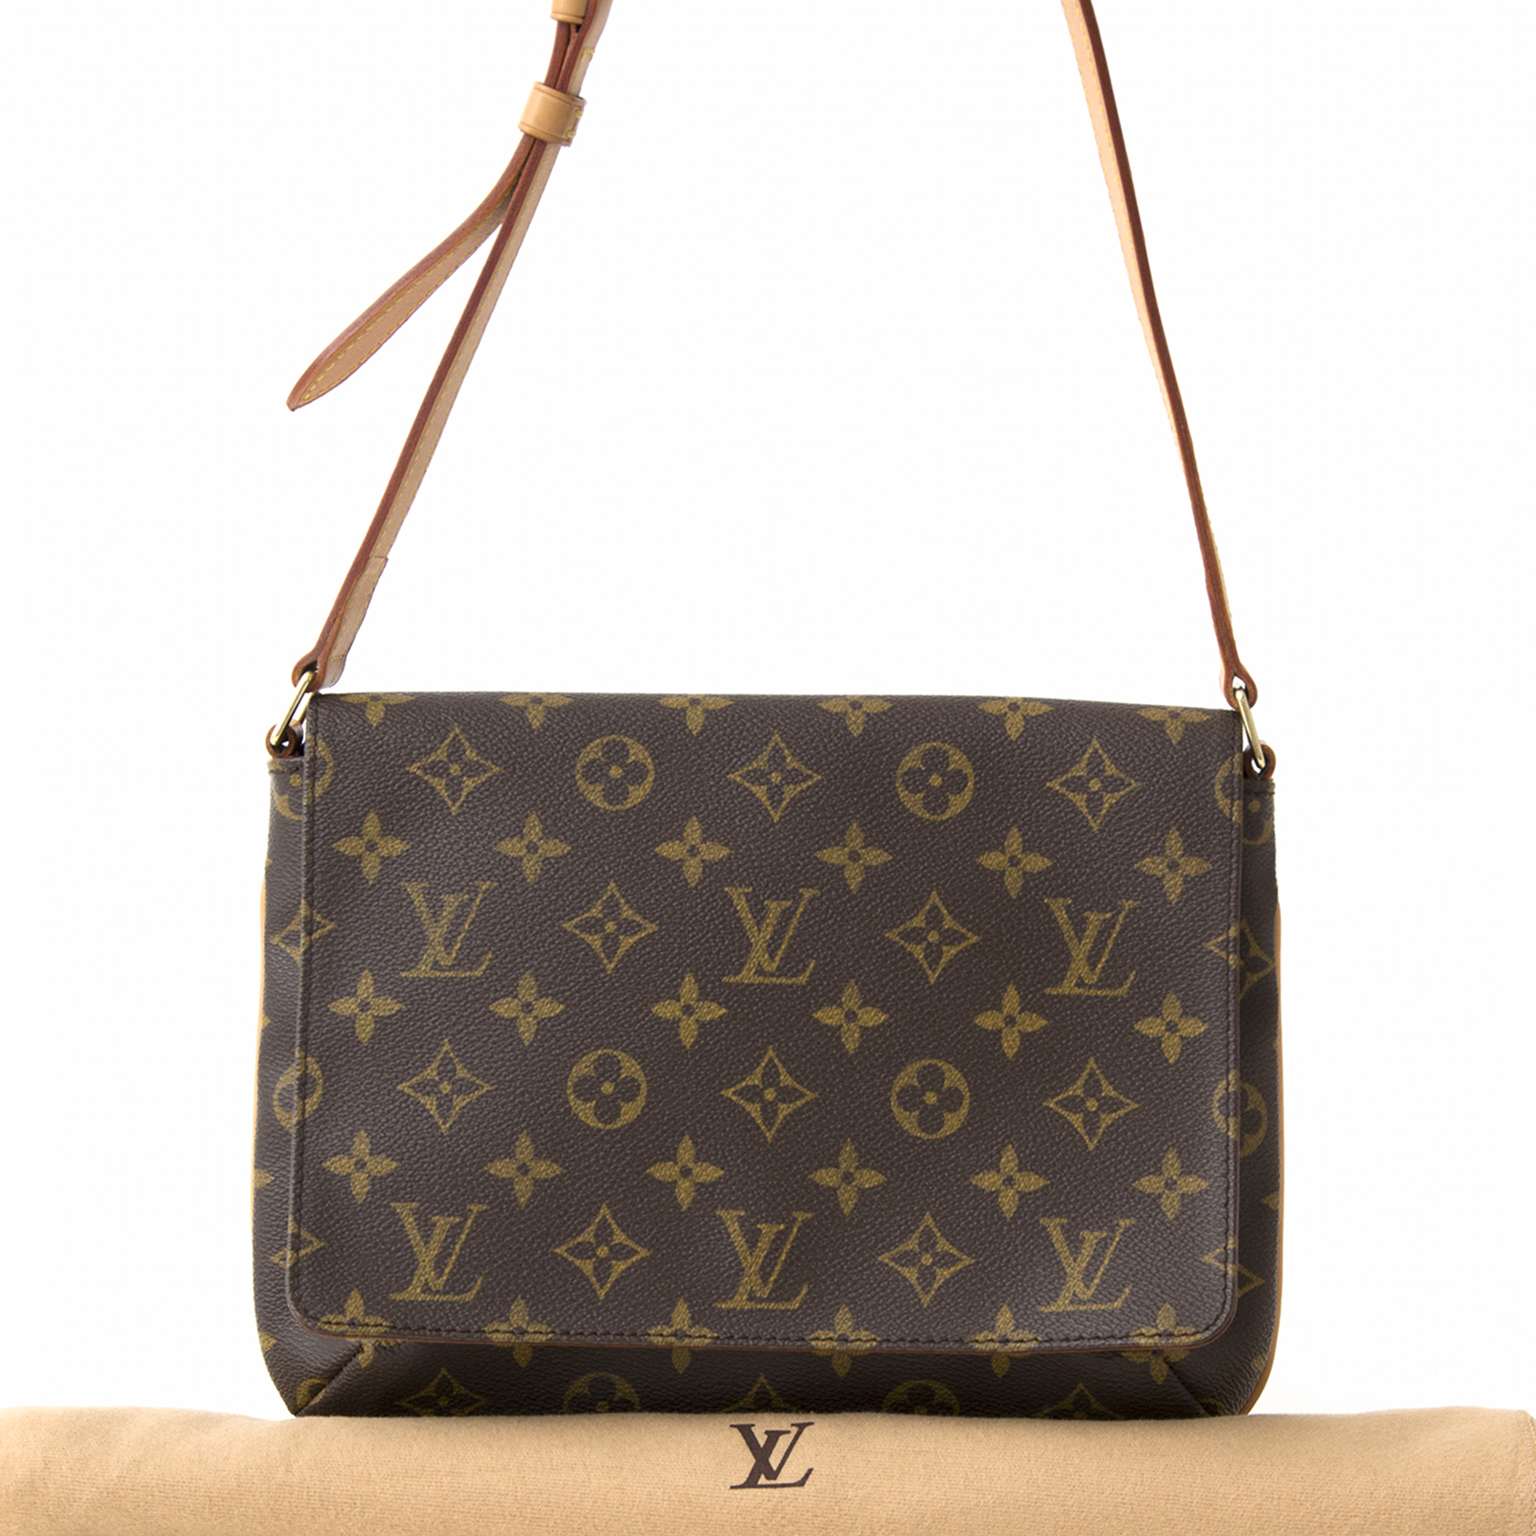 f855d7500b69 ... koop tweedehands 100% authentiek Louis Vuitton Monogram Musette Tango  webshop labellov.com